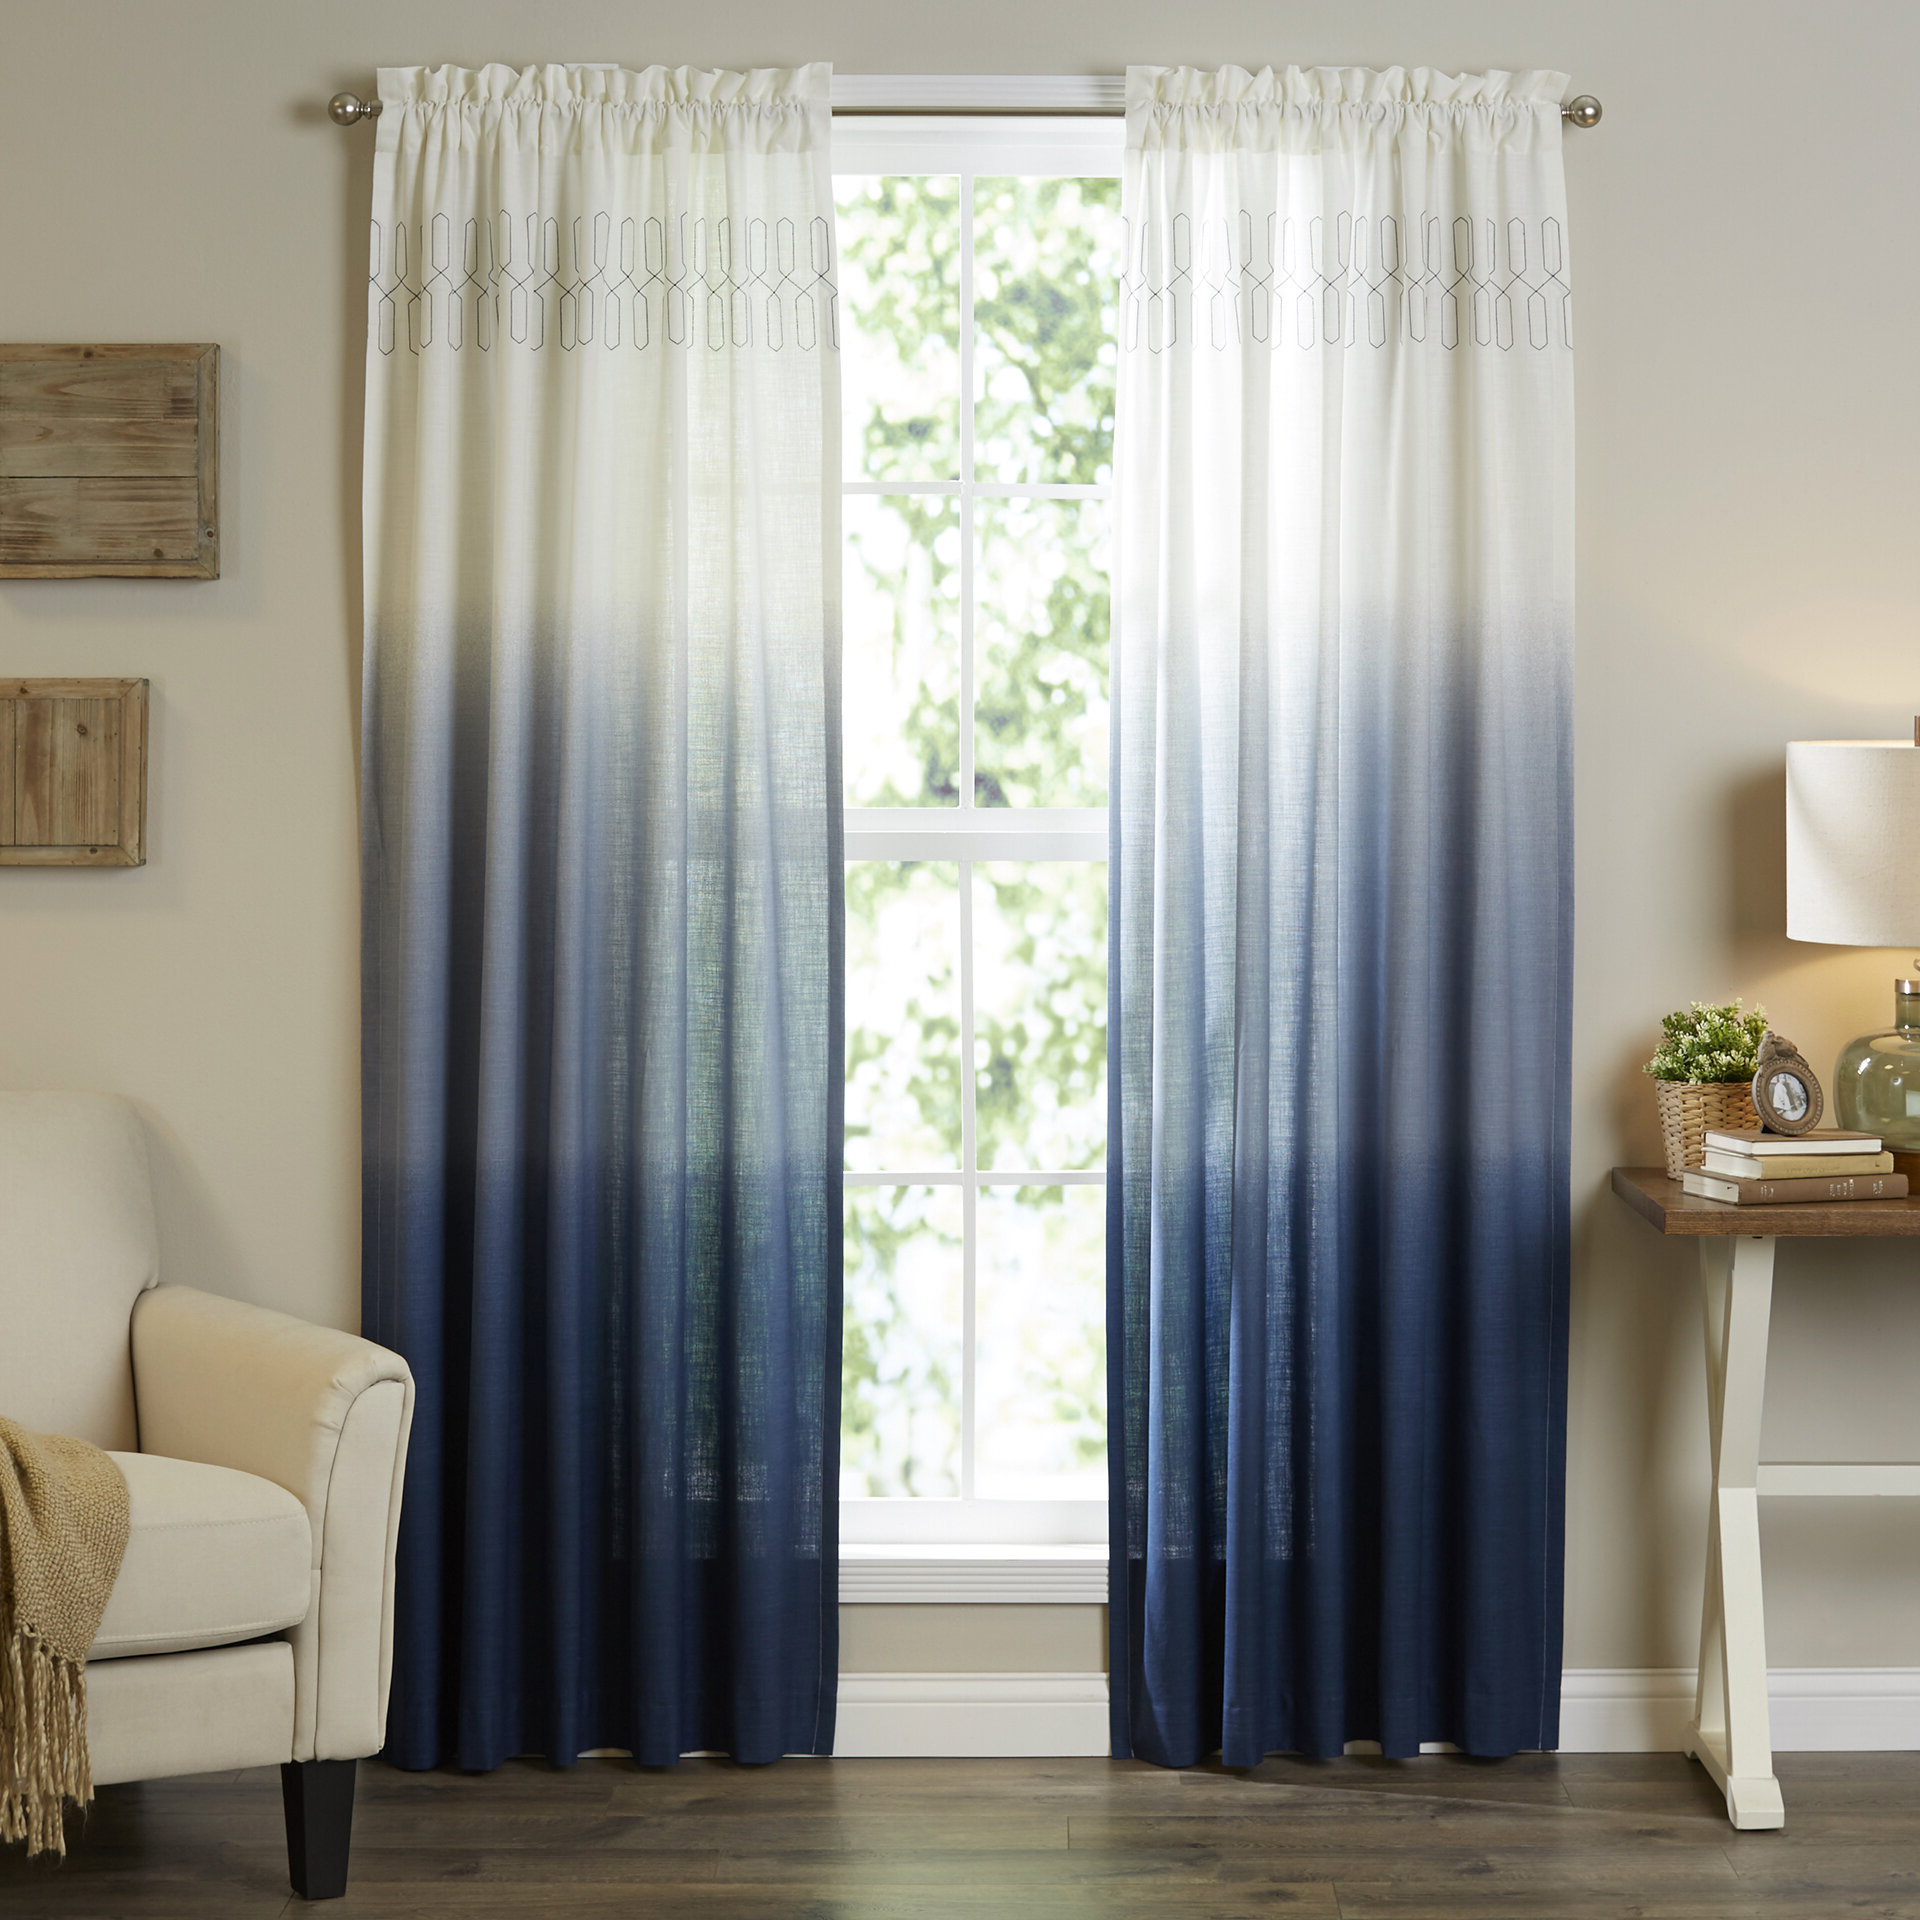 Single Curtain Panels In Well Known Higbee Solid Sheer Rod Pocket Single Curtain Panel (View 7 of 20)